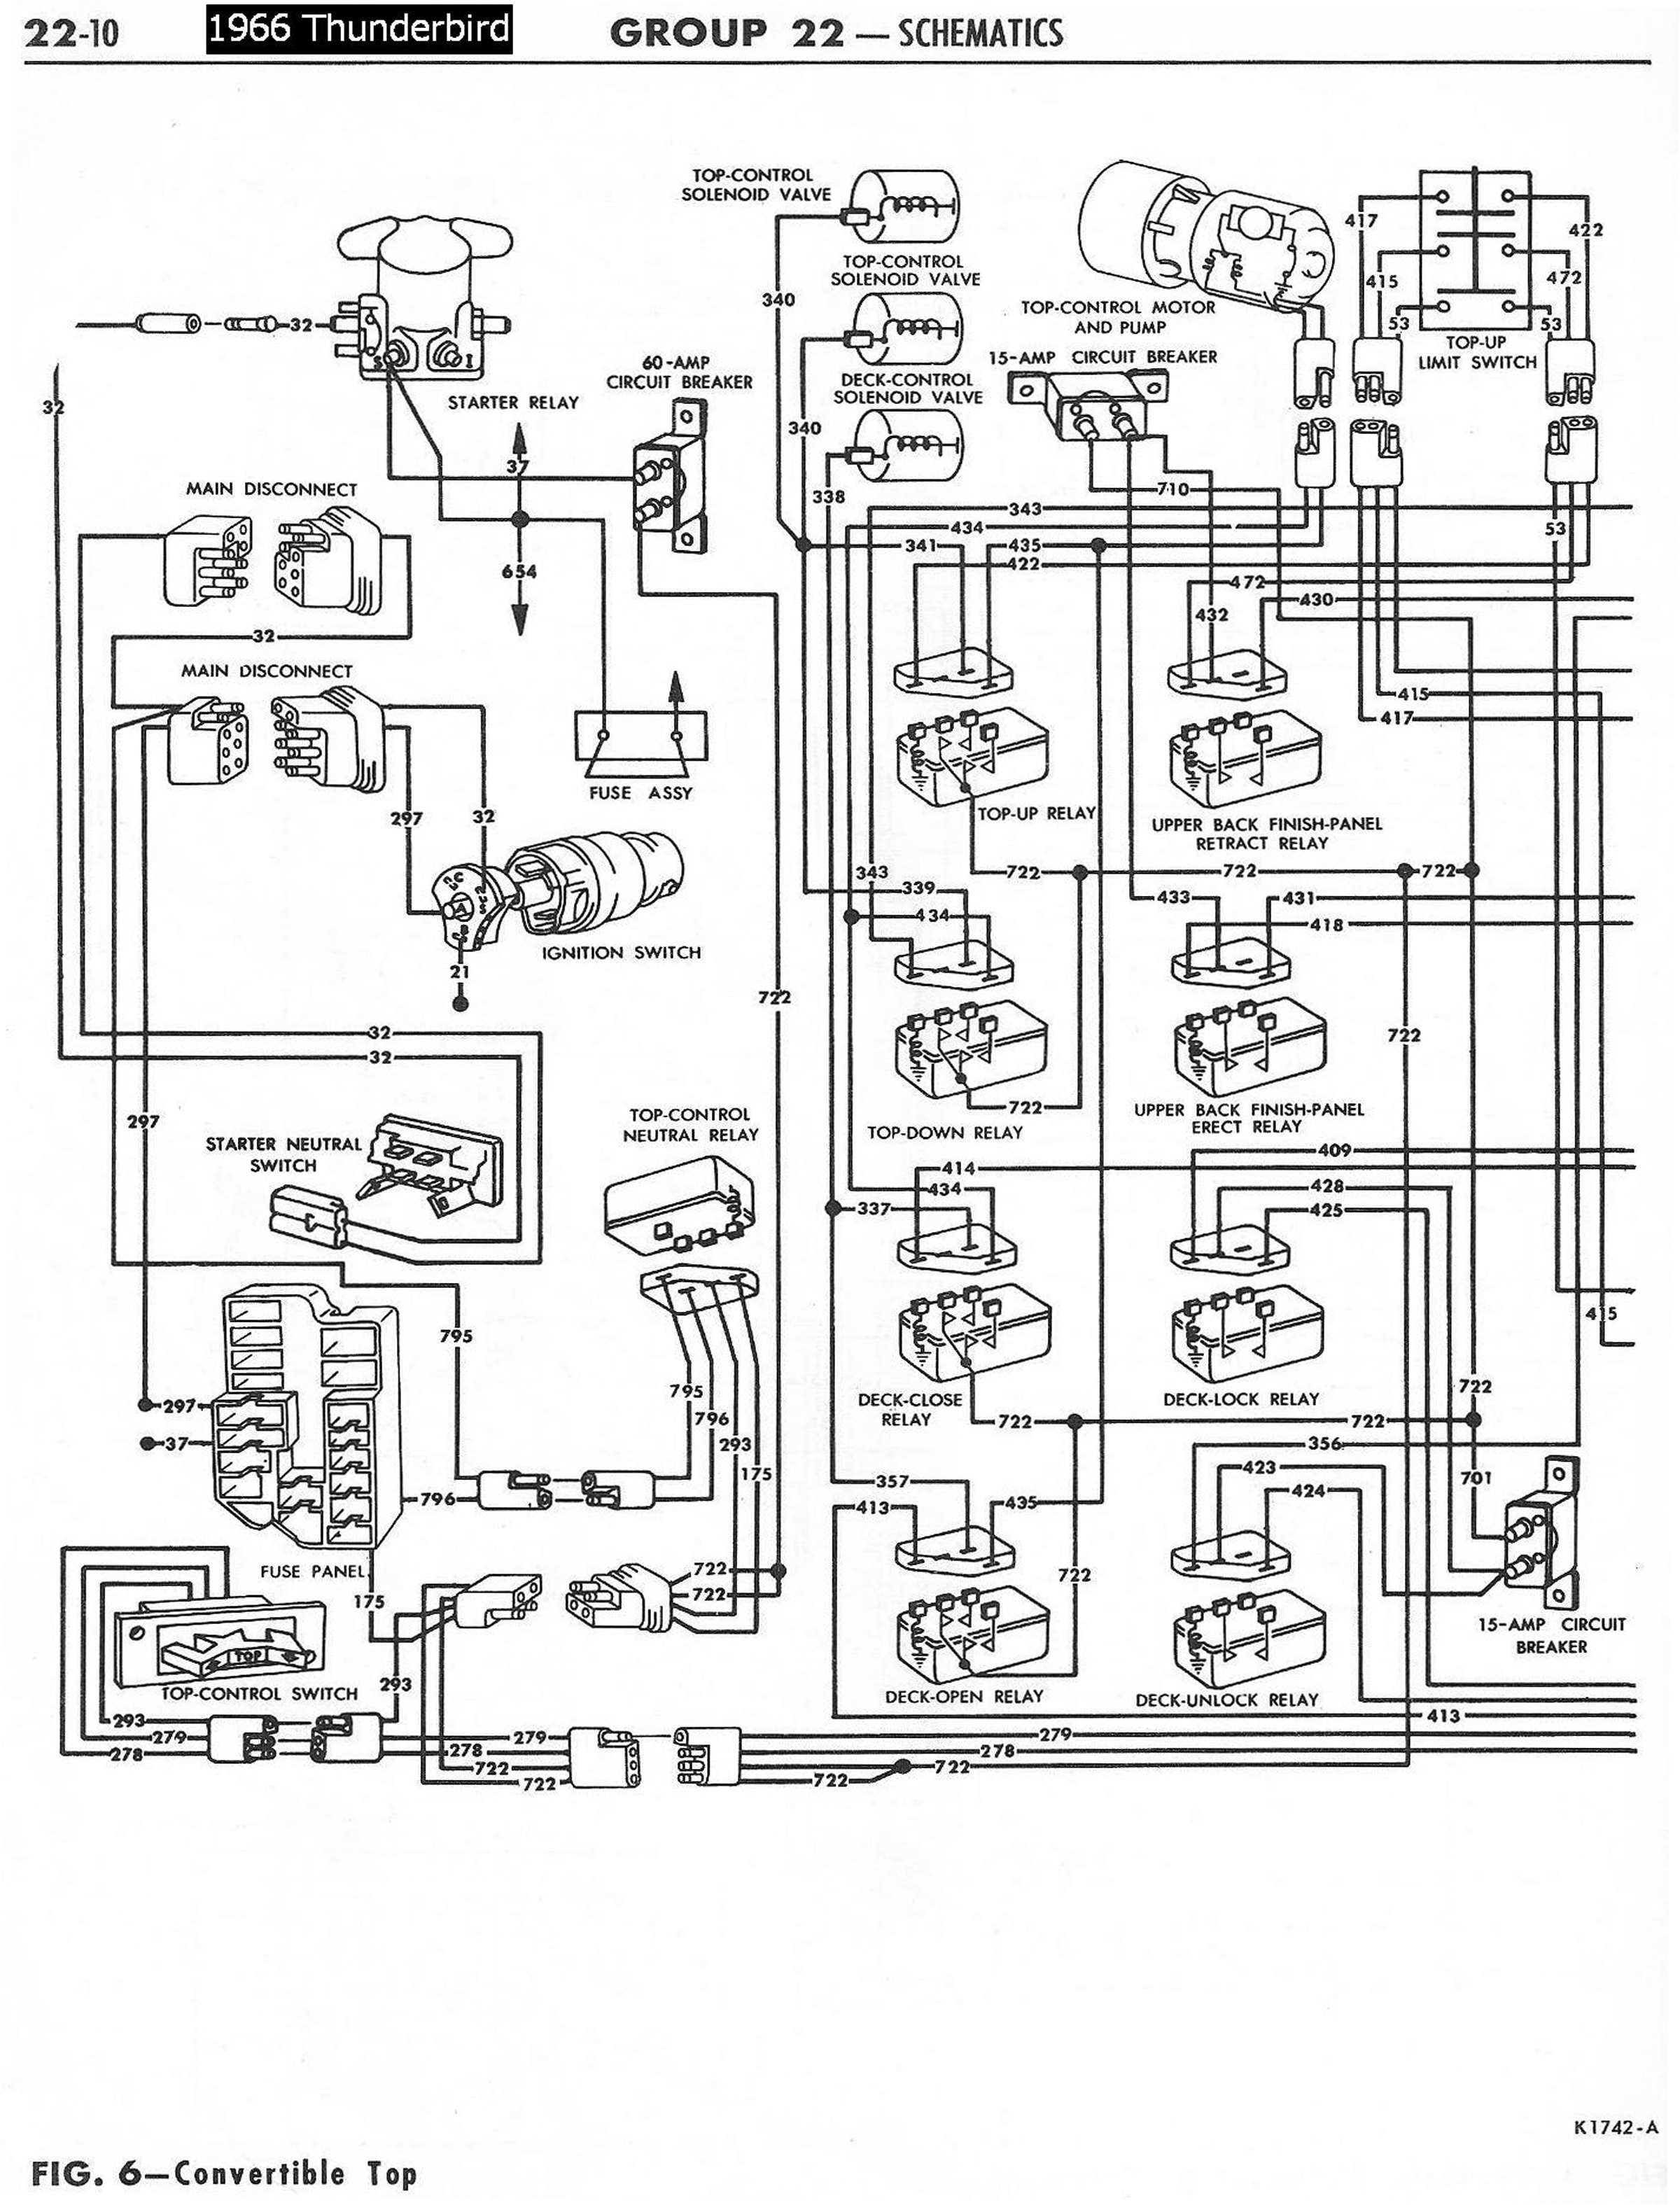 Wiring Diagram Ford F53 Blinker